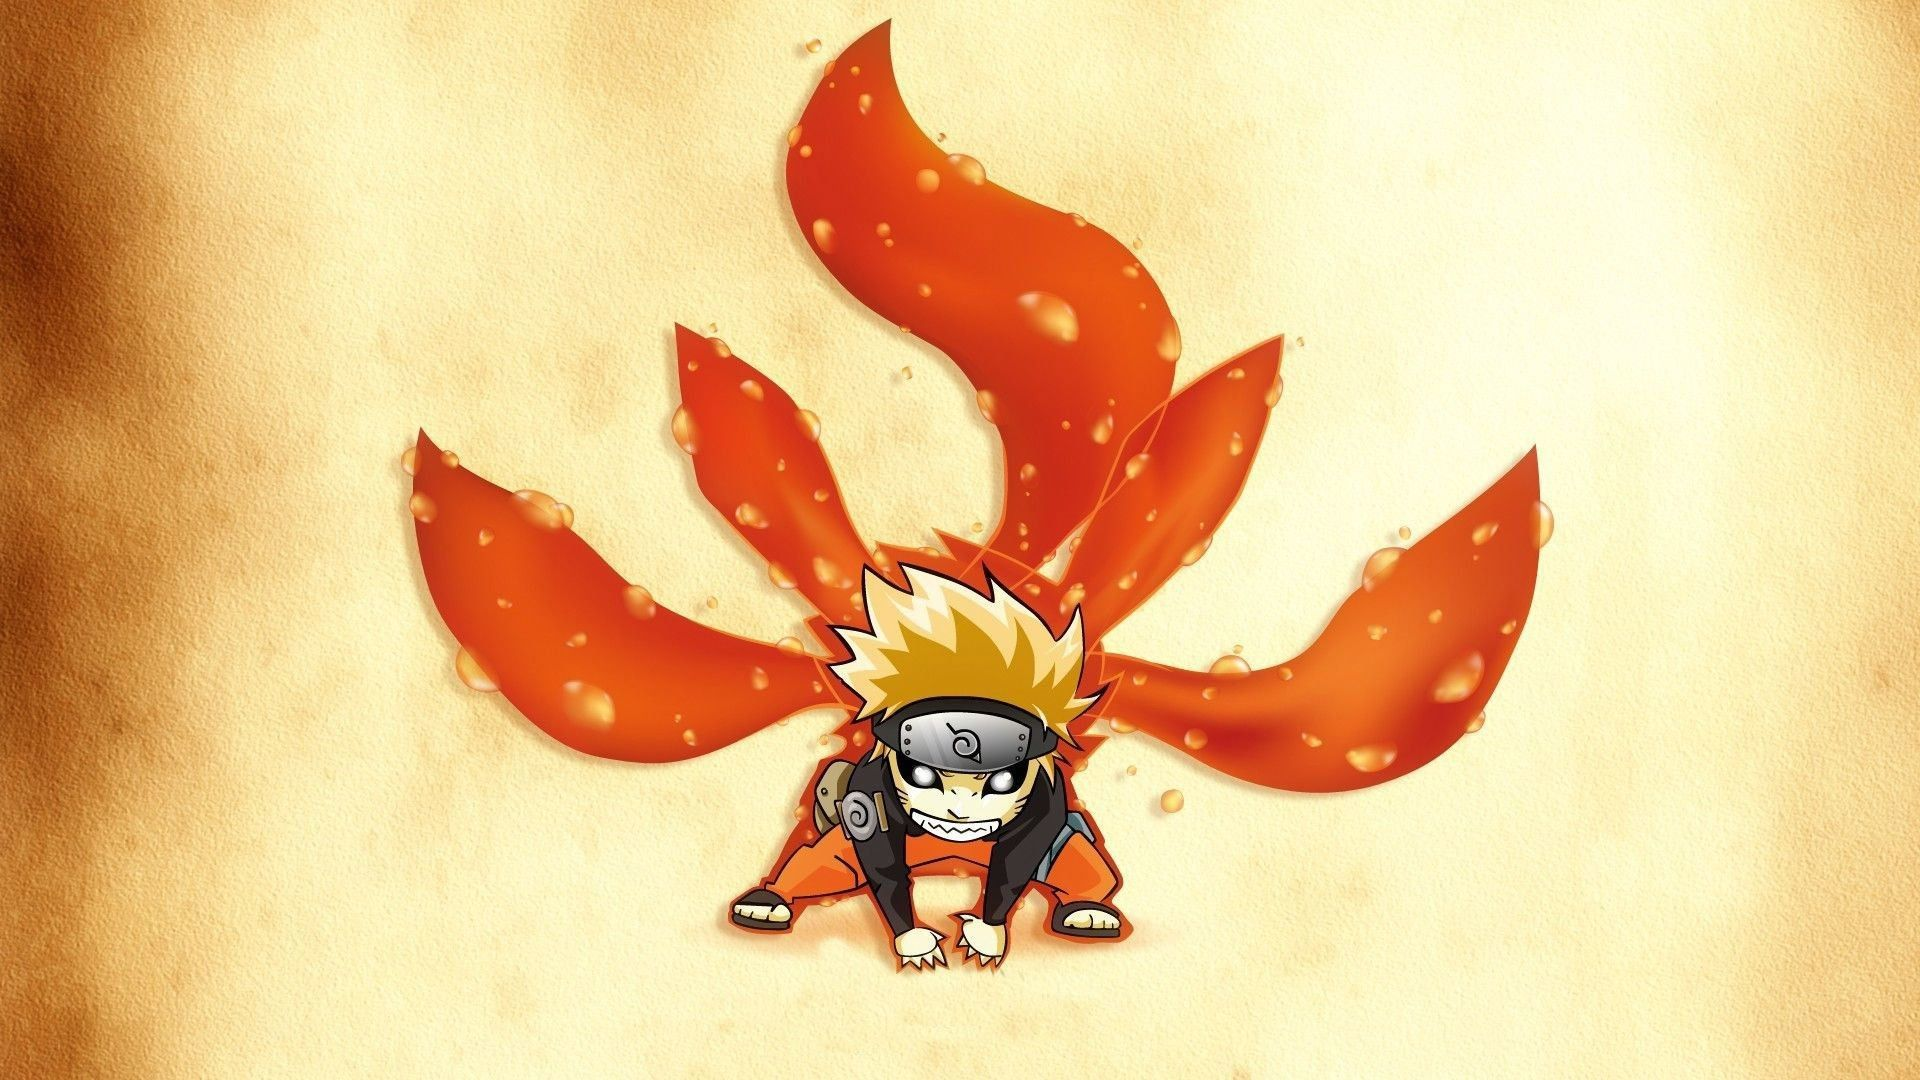 Naruto Ninetailfox Wallpaper Naruto Shippuden Naruto Wallpaper Anime Wallpaper 1920x1080